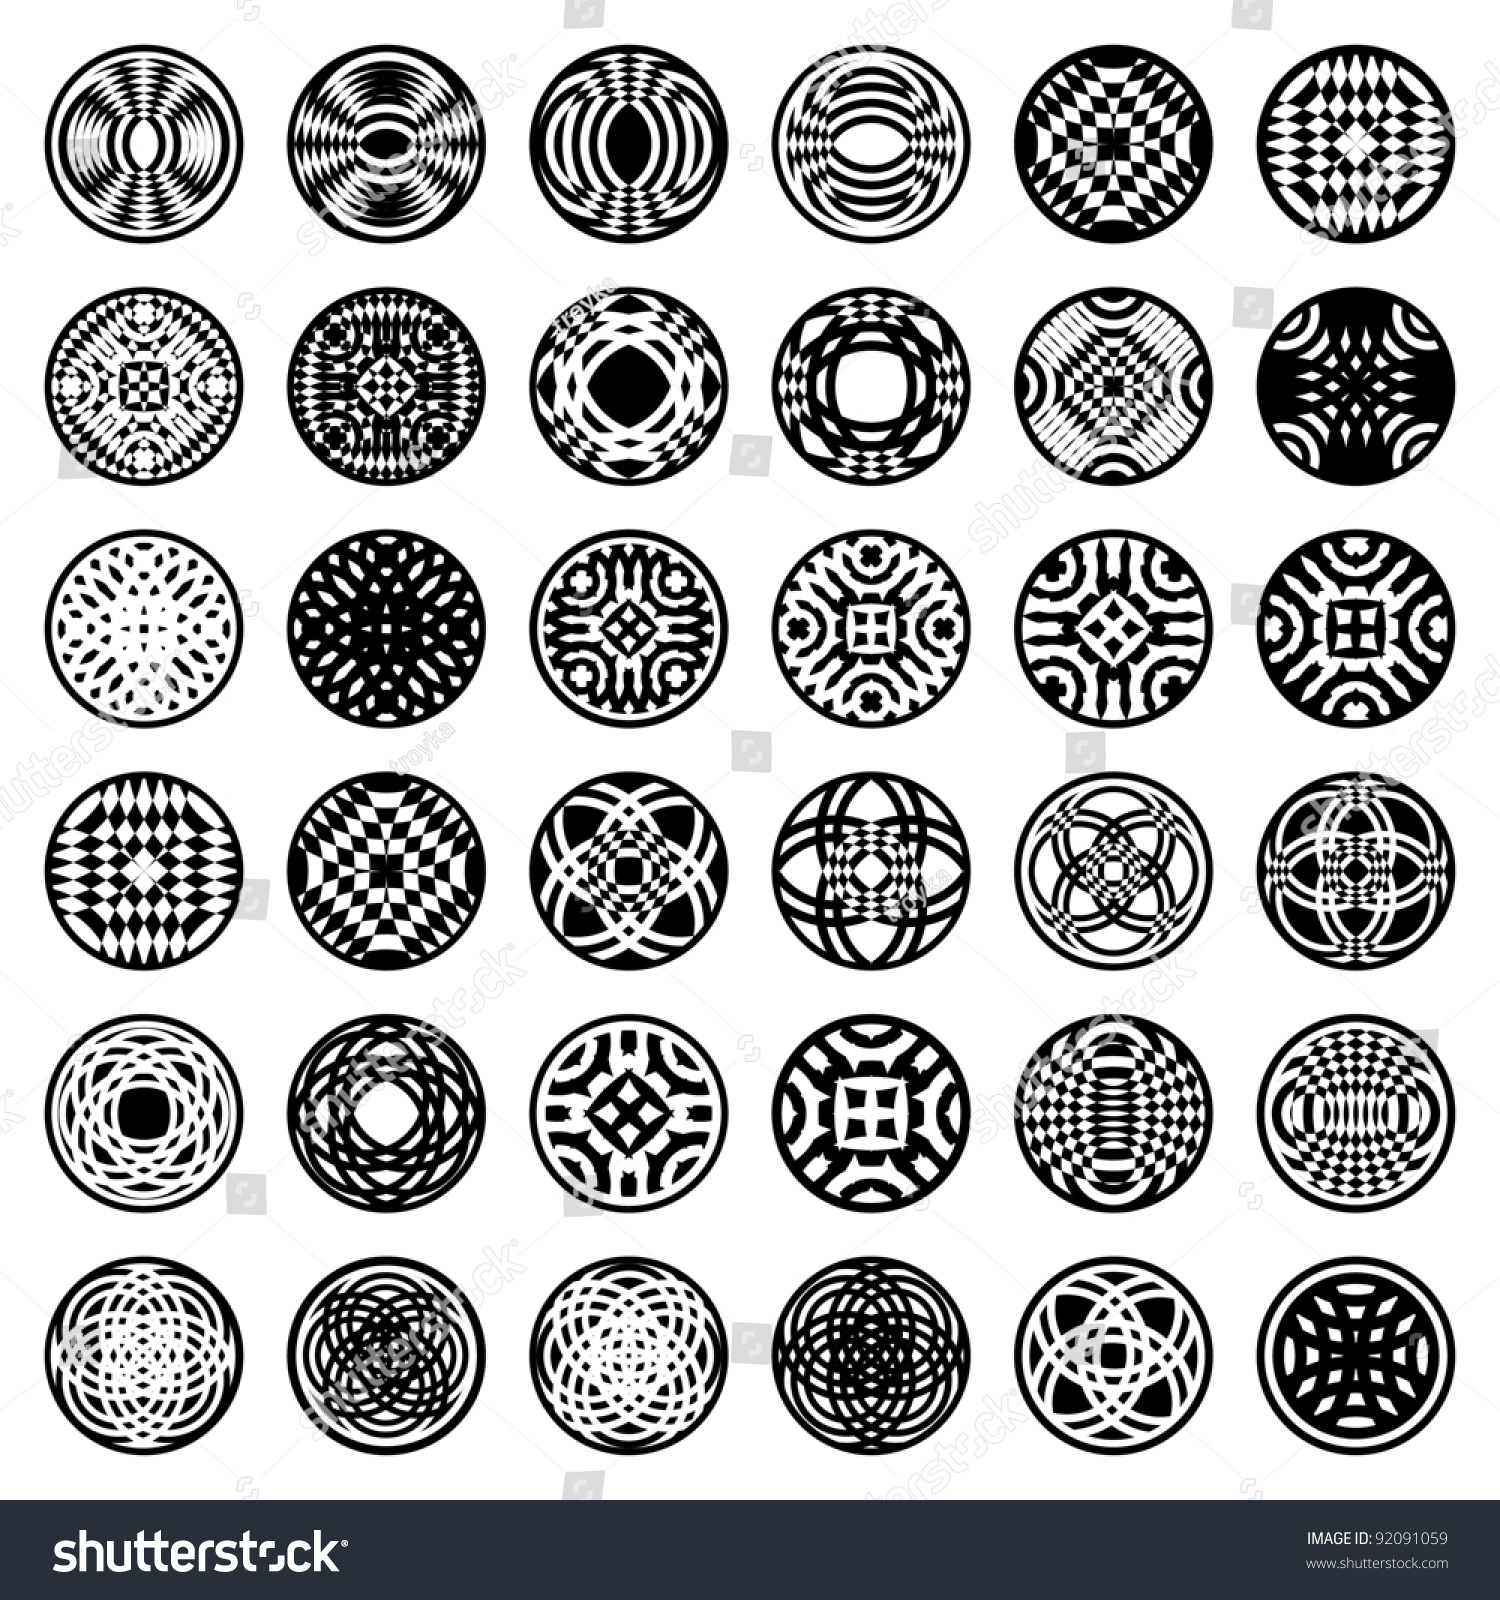 Worksheets Shape Design Patterns patterns circle shape 36 design elements stock vector 92091059 in set 2 art